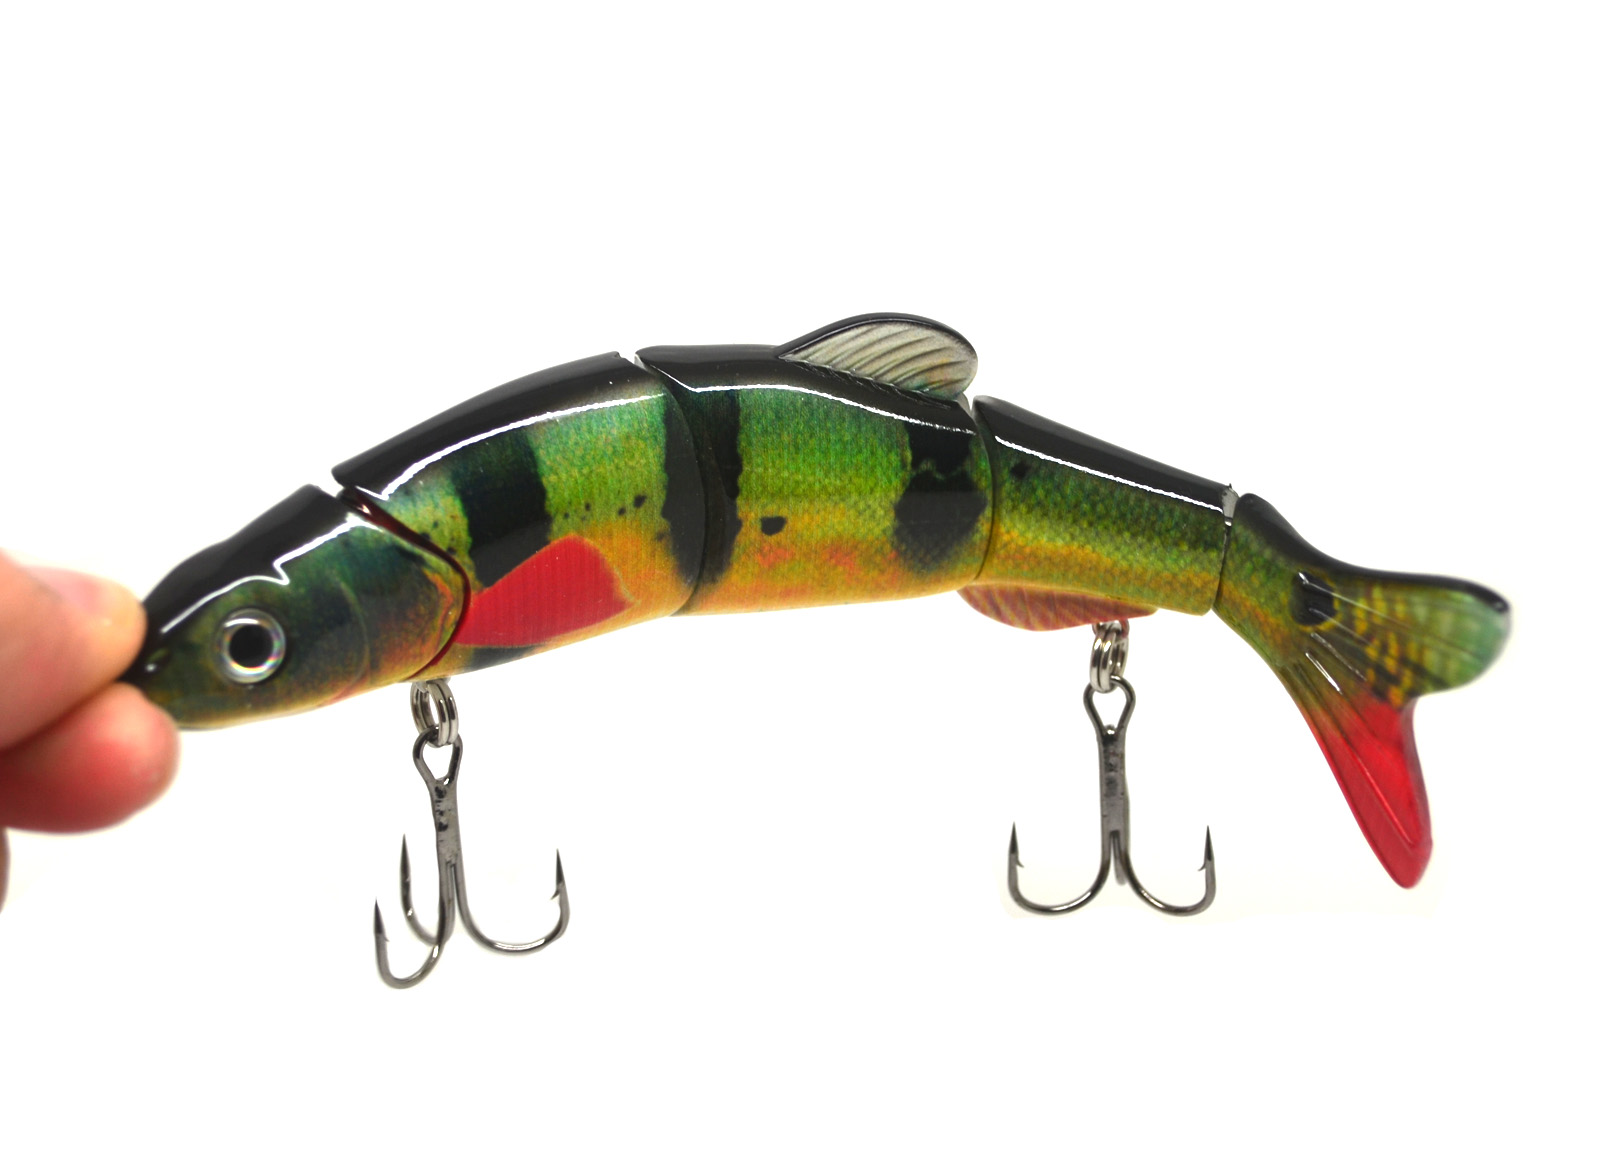 6 5 multi jointed bass pike muskie fishing lure bait for Musky fishing lures